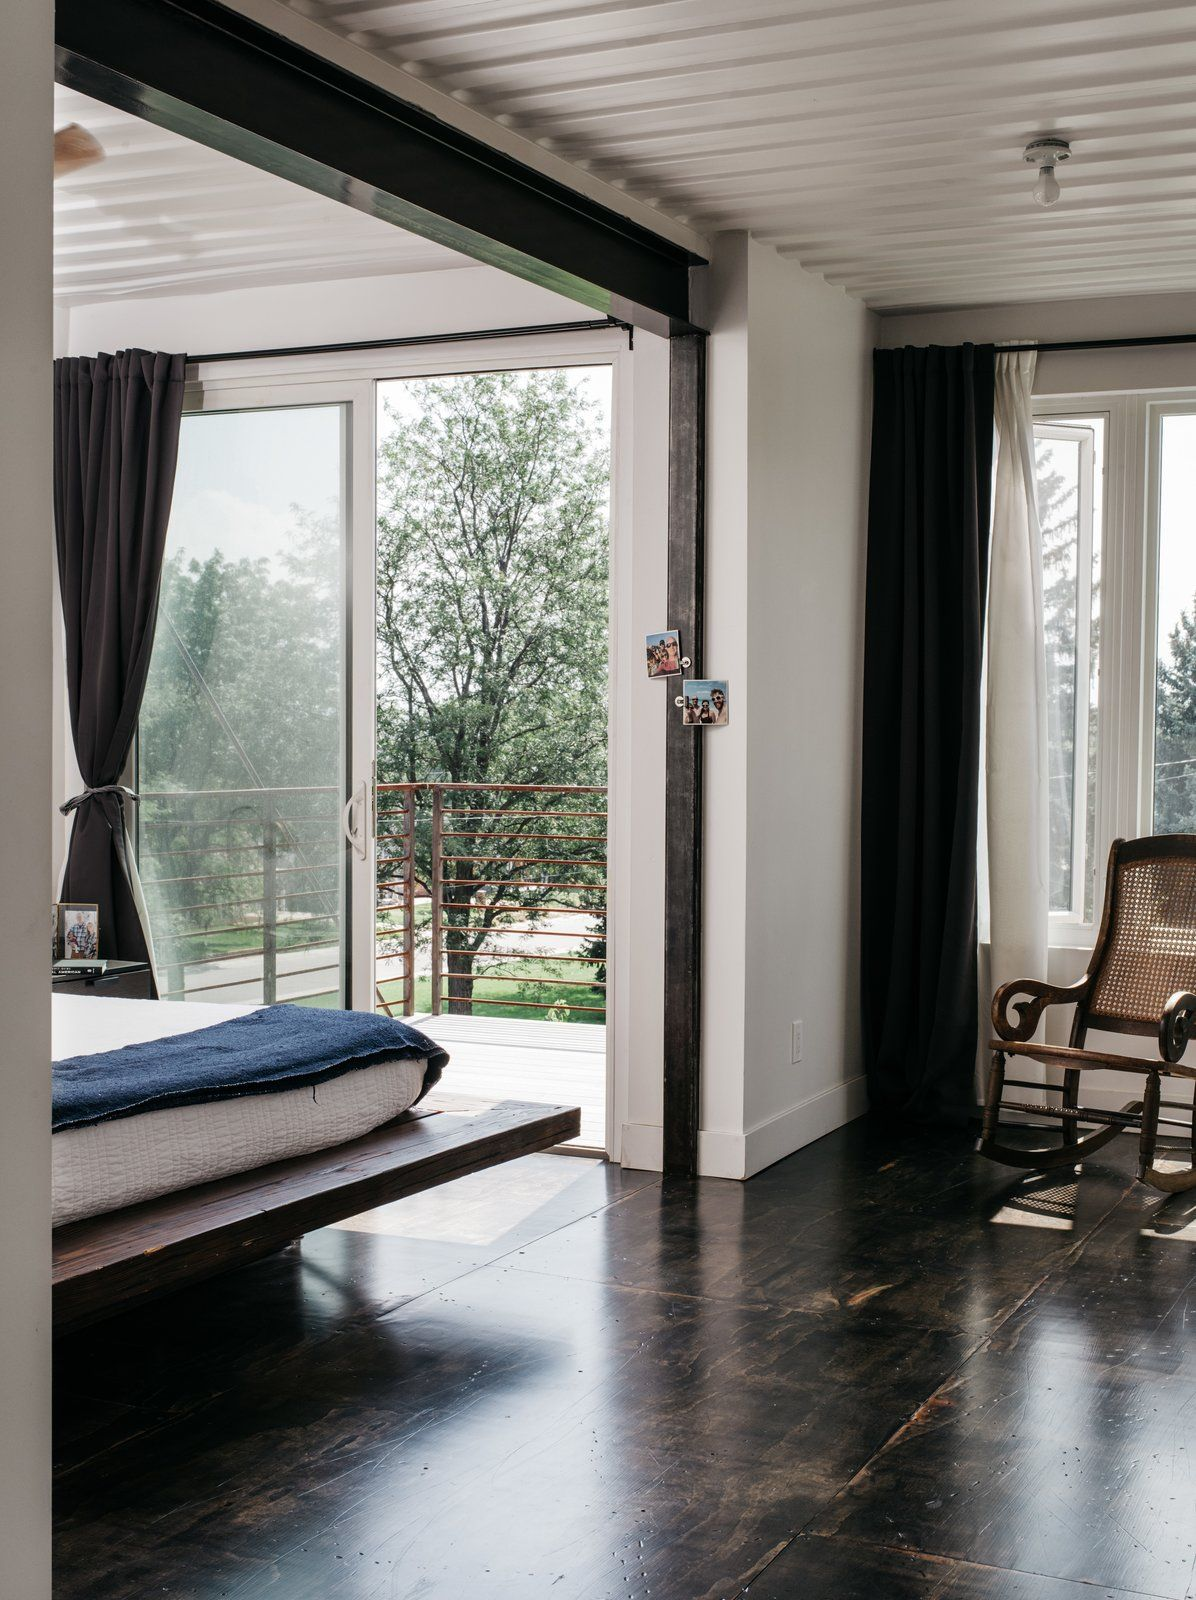 The bedrooms have separate open balconies and sliding doors